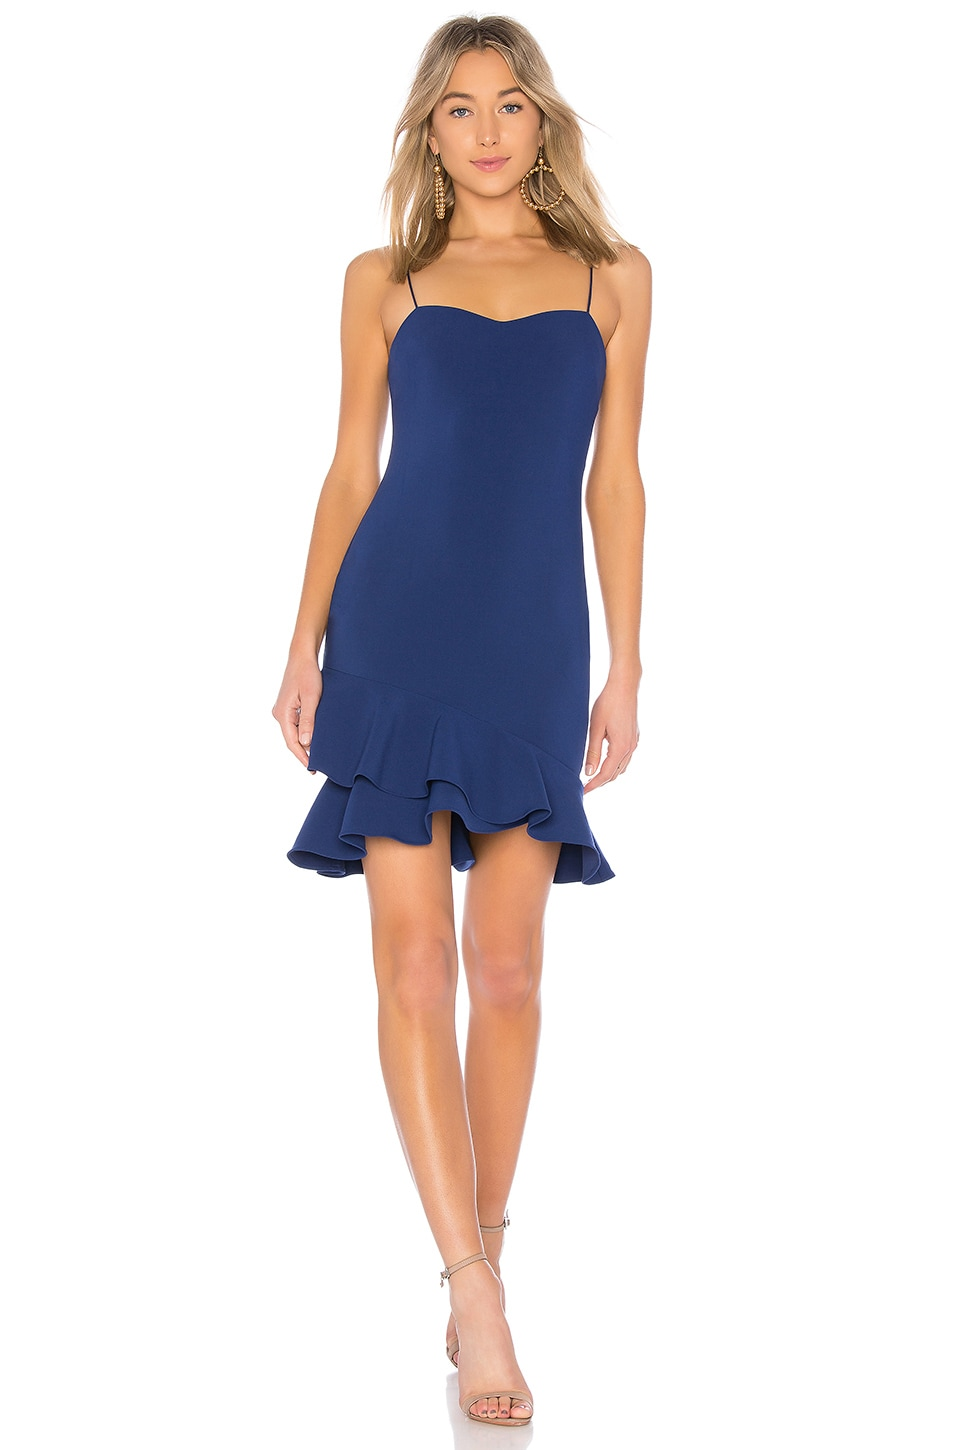 LIKELY Verona Dress in Blueprint